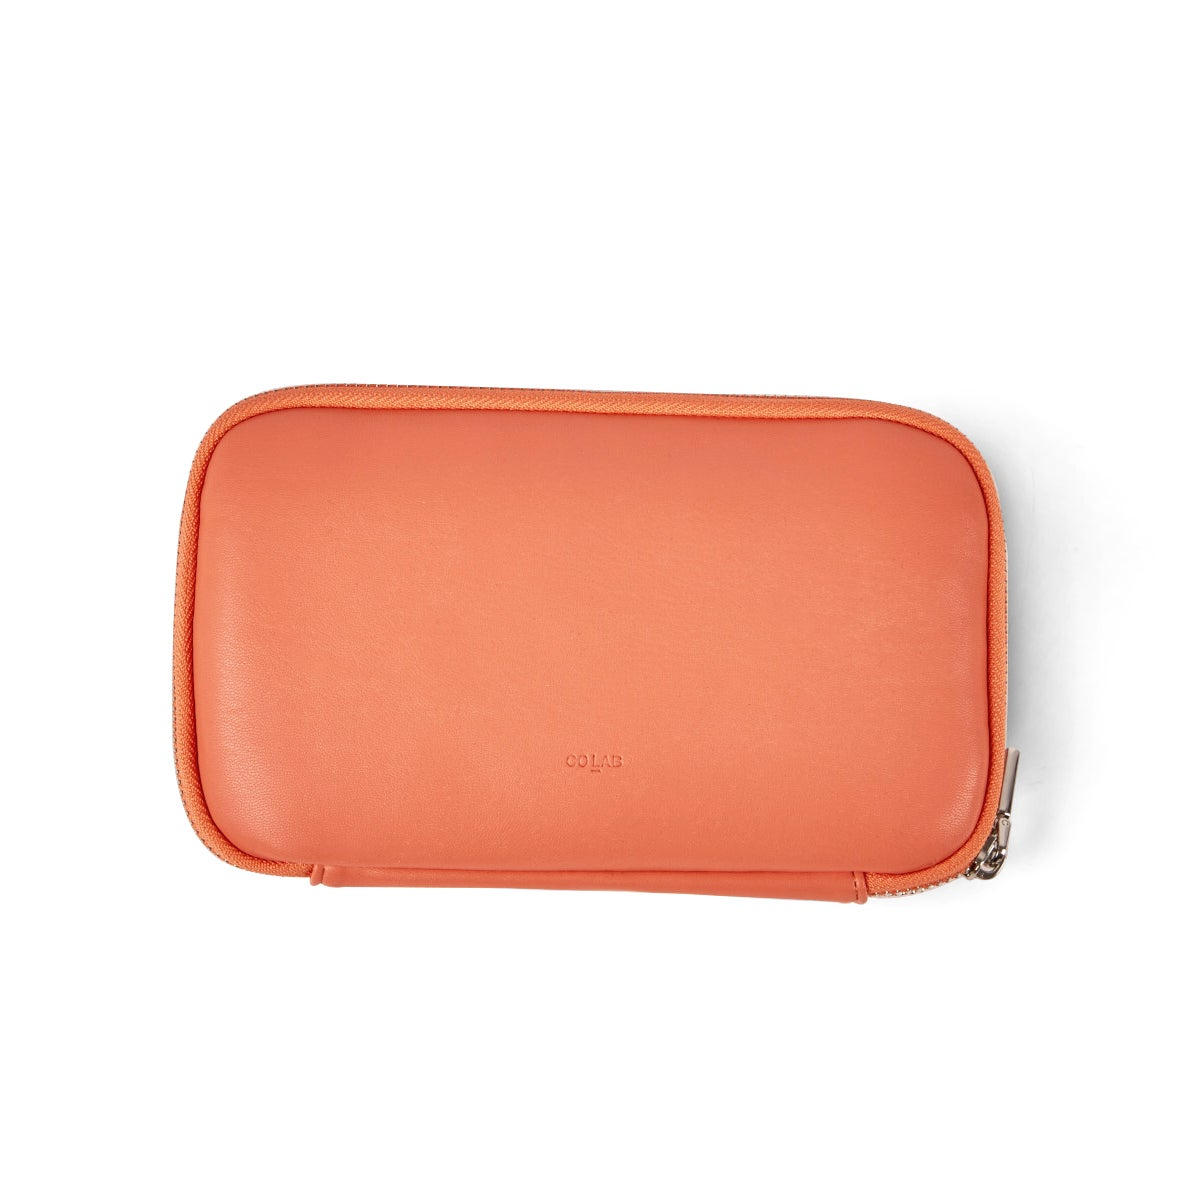 Lds Harlow World coral wallet